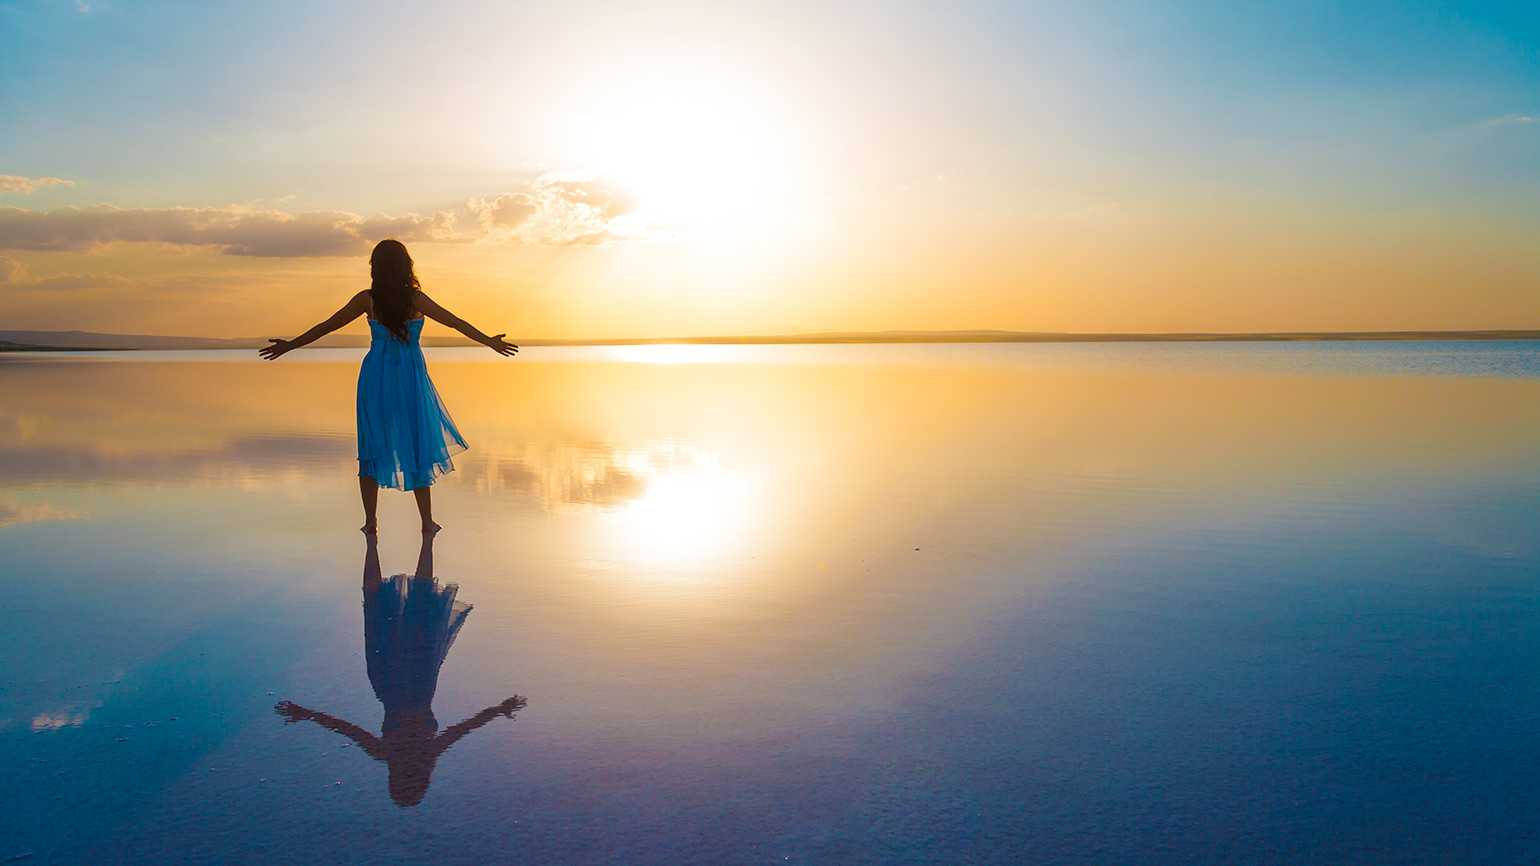 A woman stands at the edge of still water that reflects a sunrise